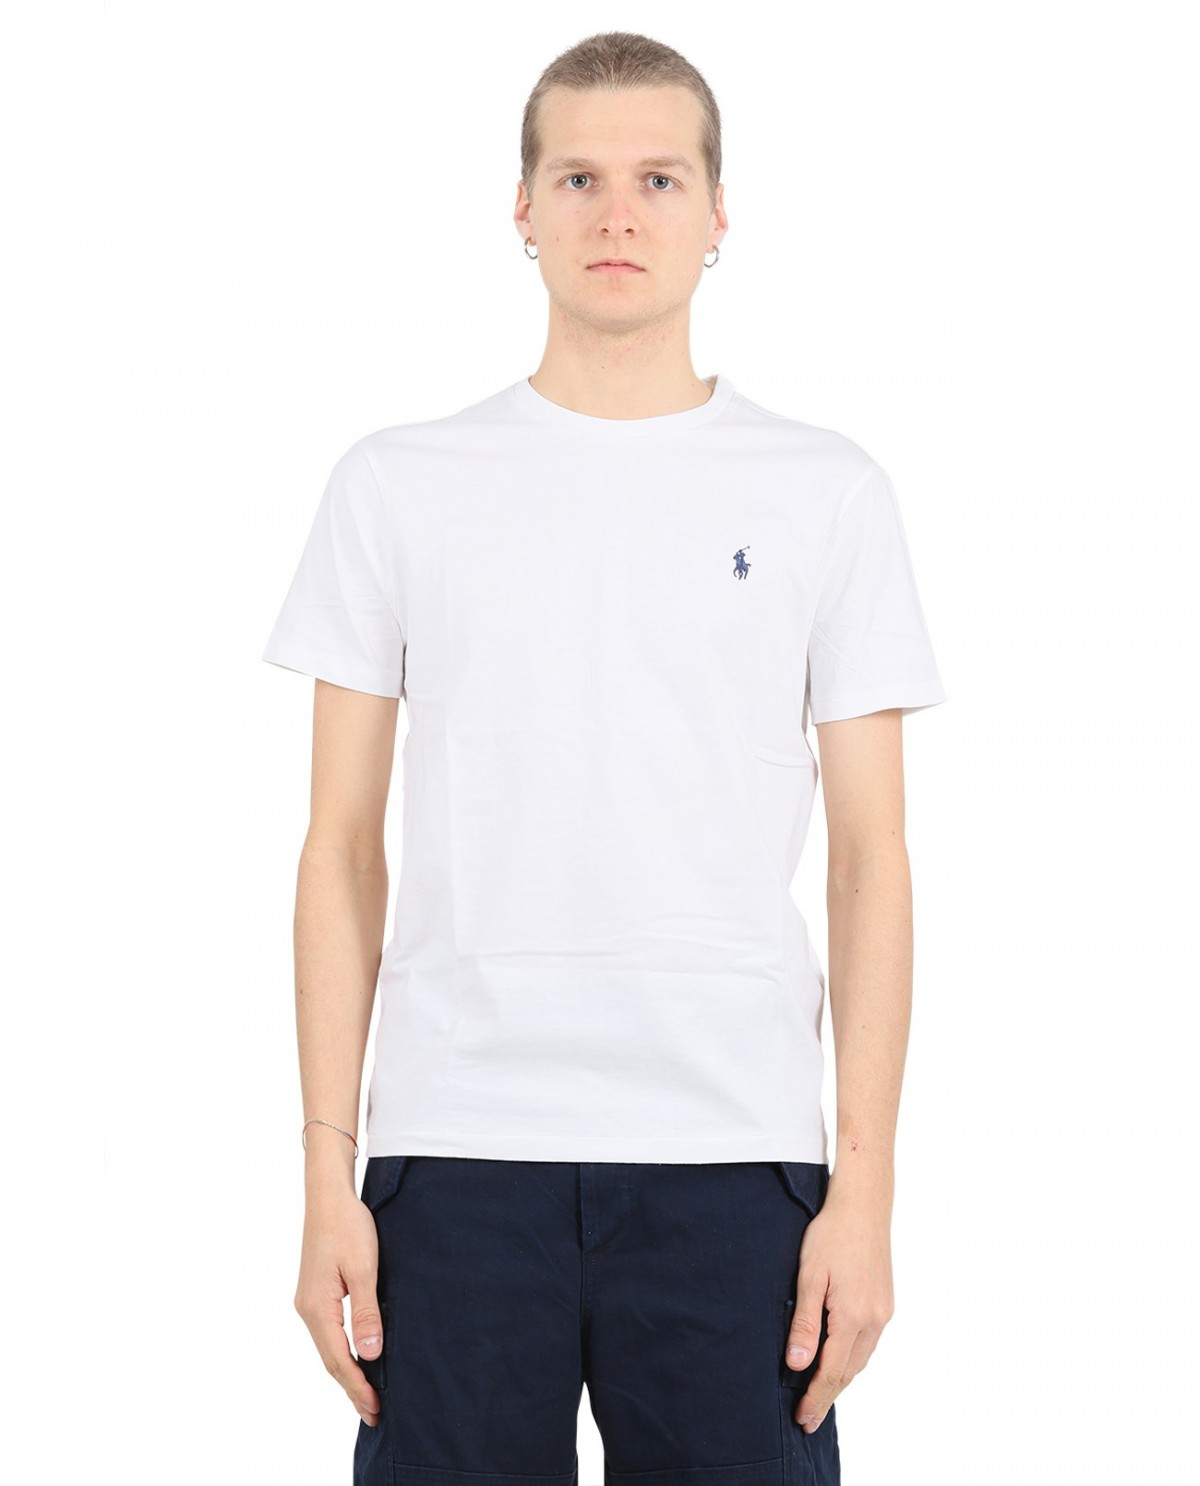 Polo Ralph Lauren white t shirt